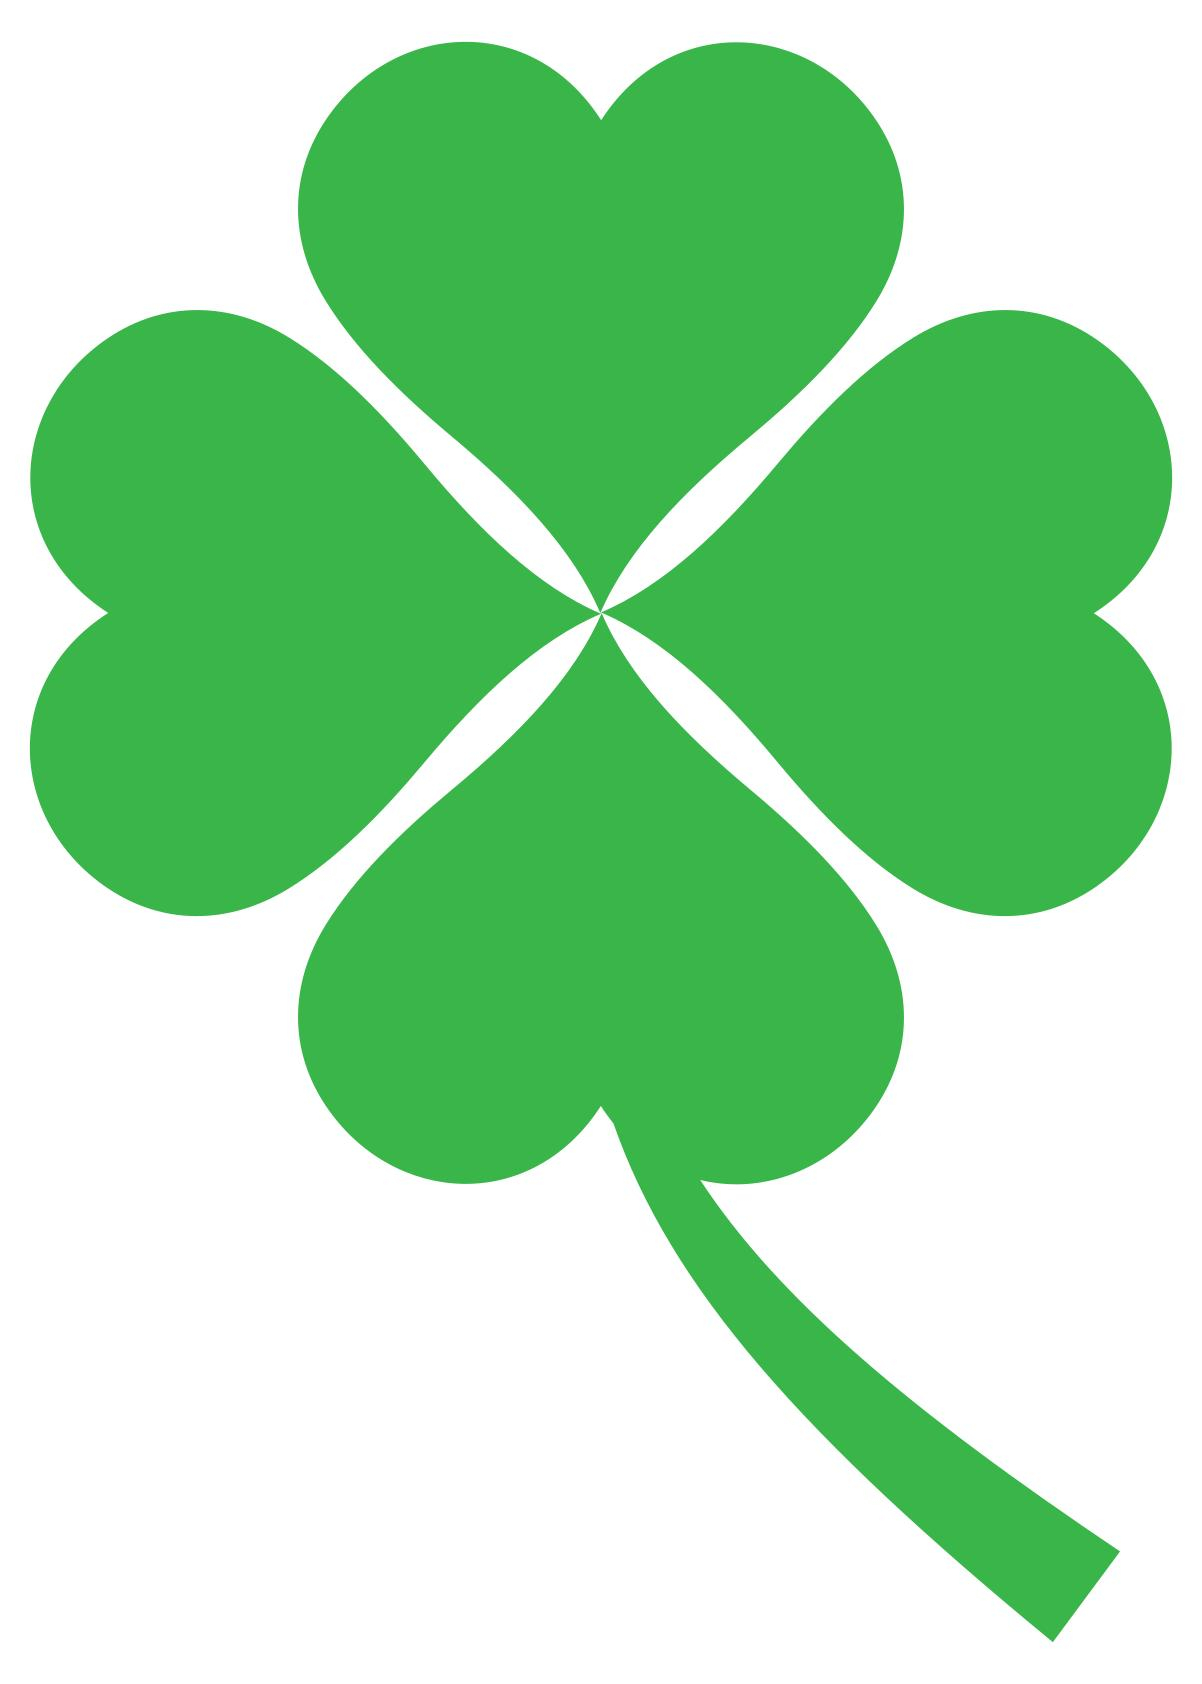 Four Leaf Clover Clipart to printable.